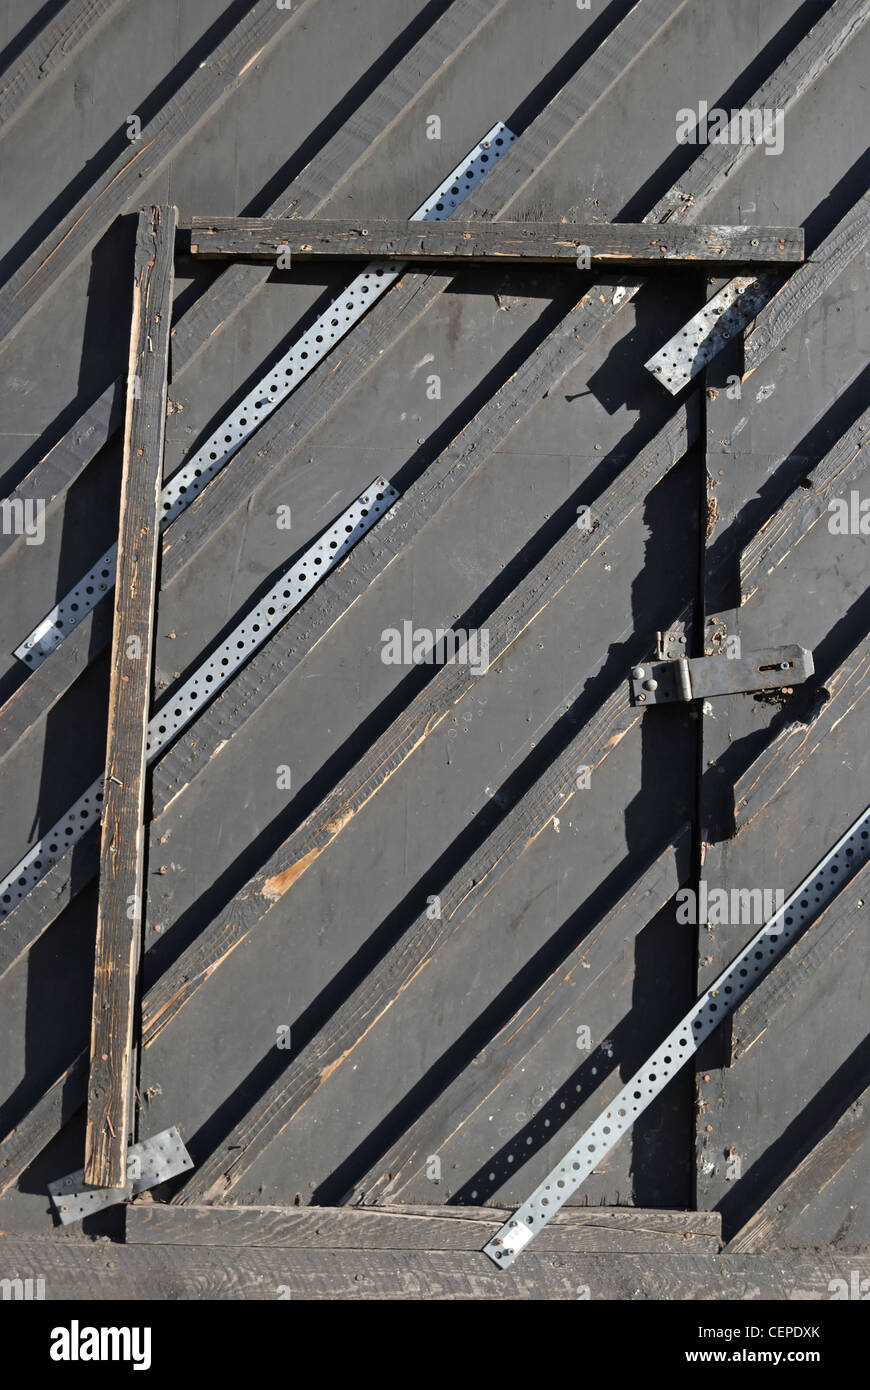 concealed temporary entrance giving workers access to a construction site in kings cross, london, england - Stock Image